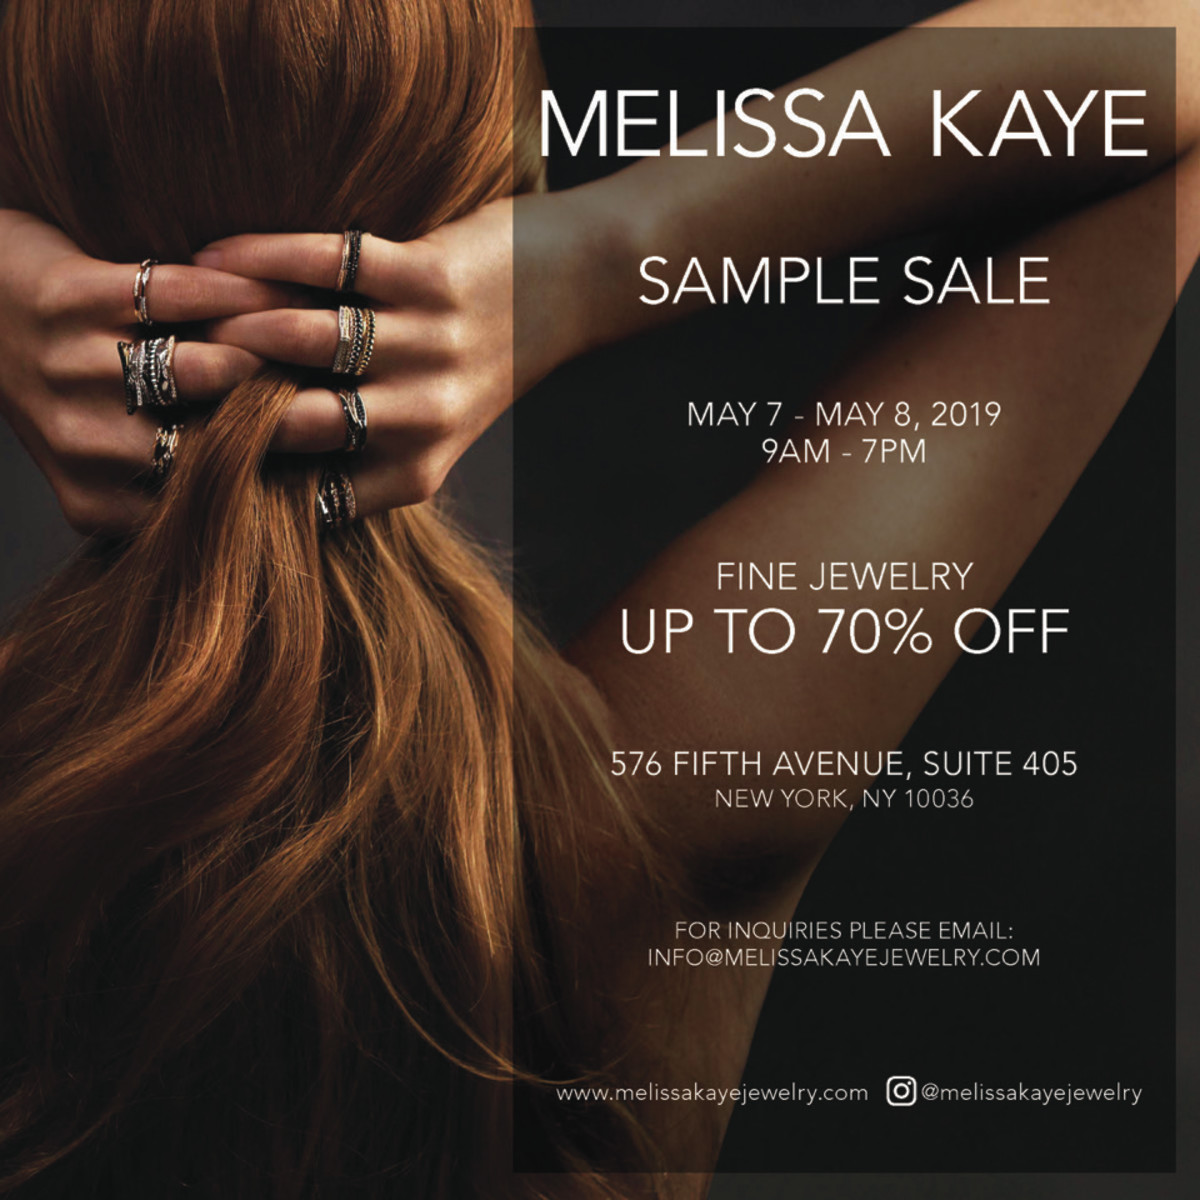 Melissa Kaye - Sample Sale (1)